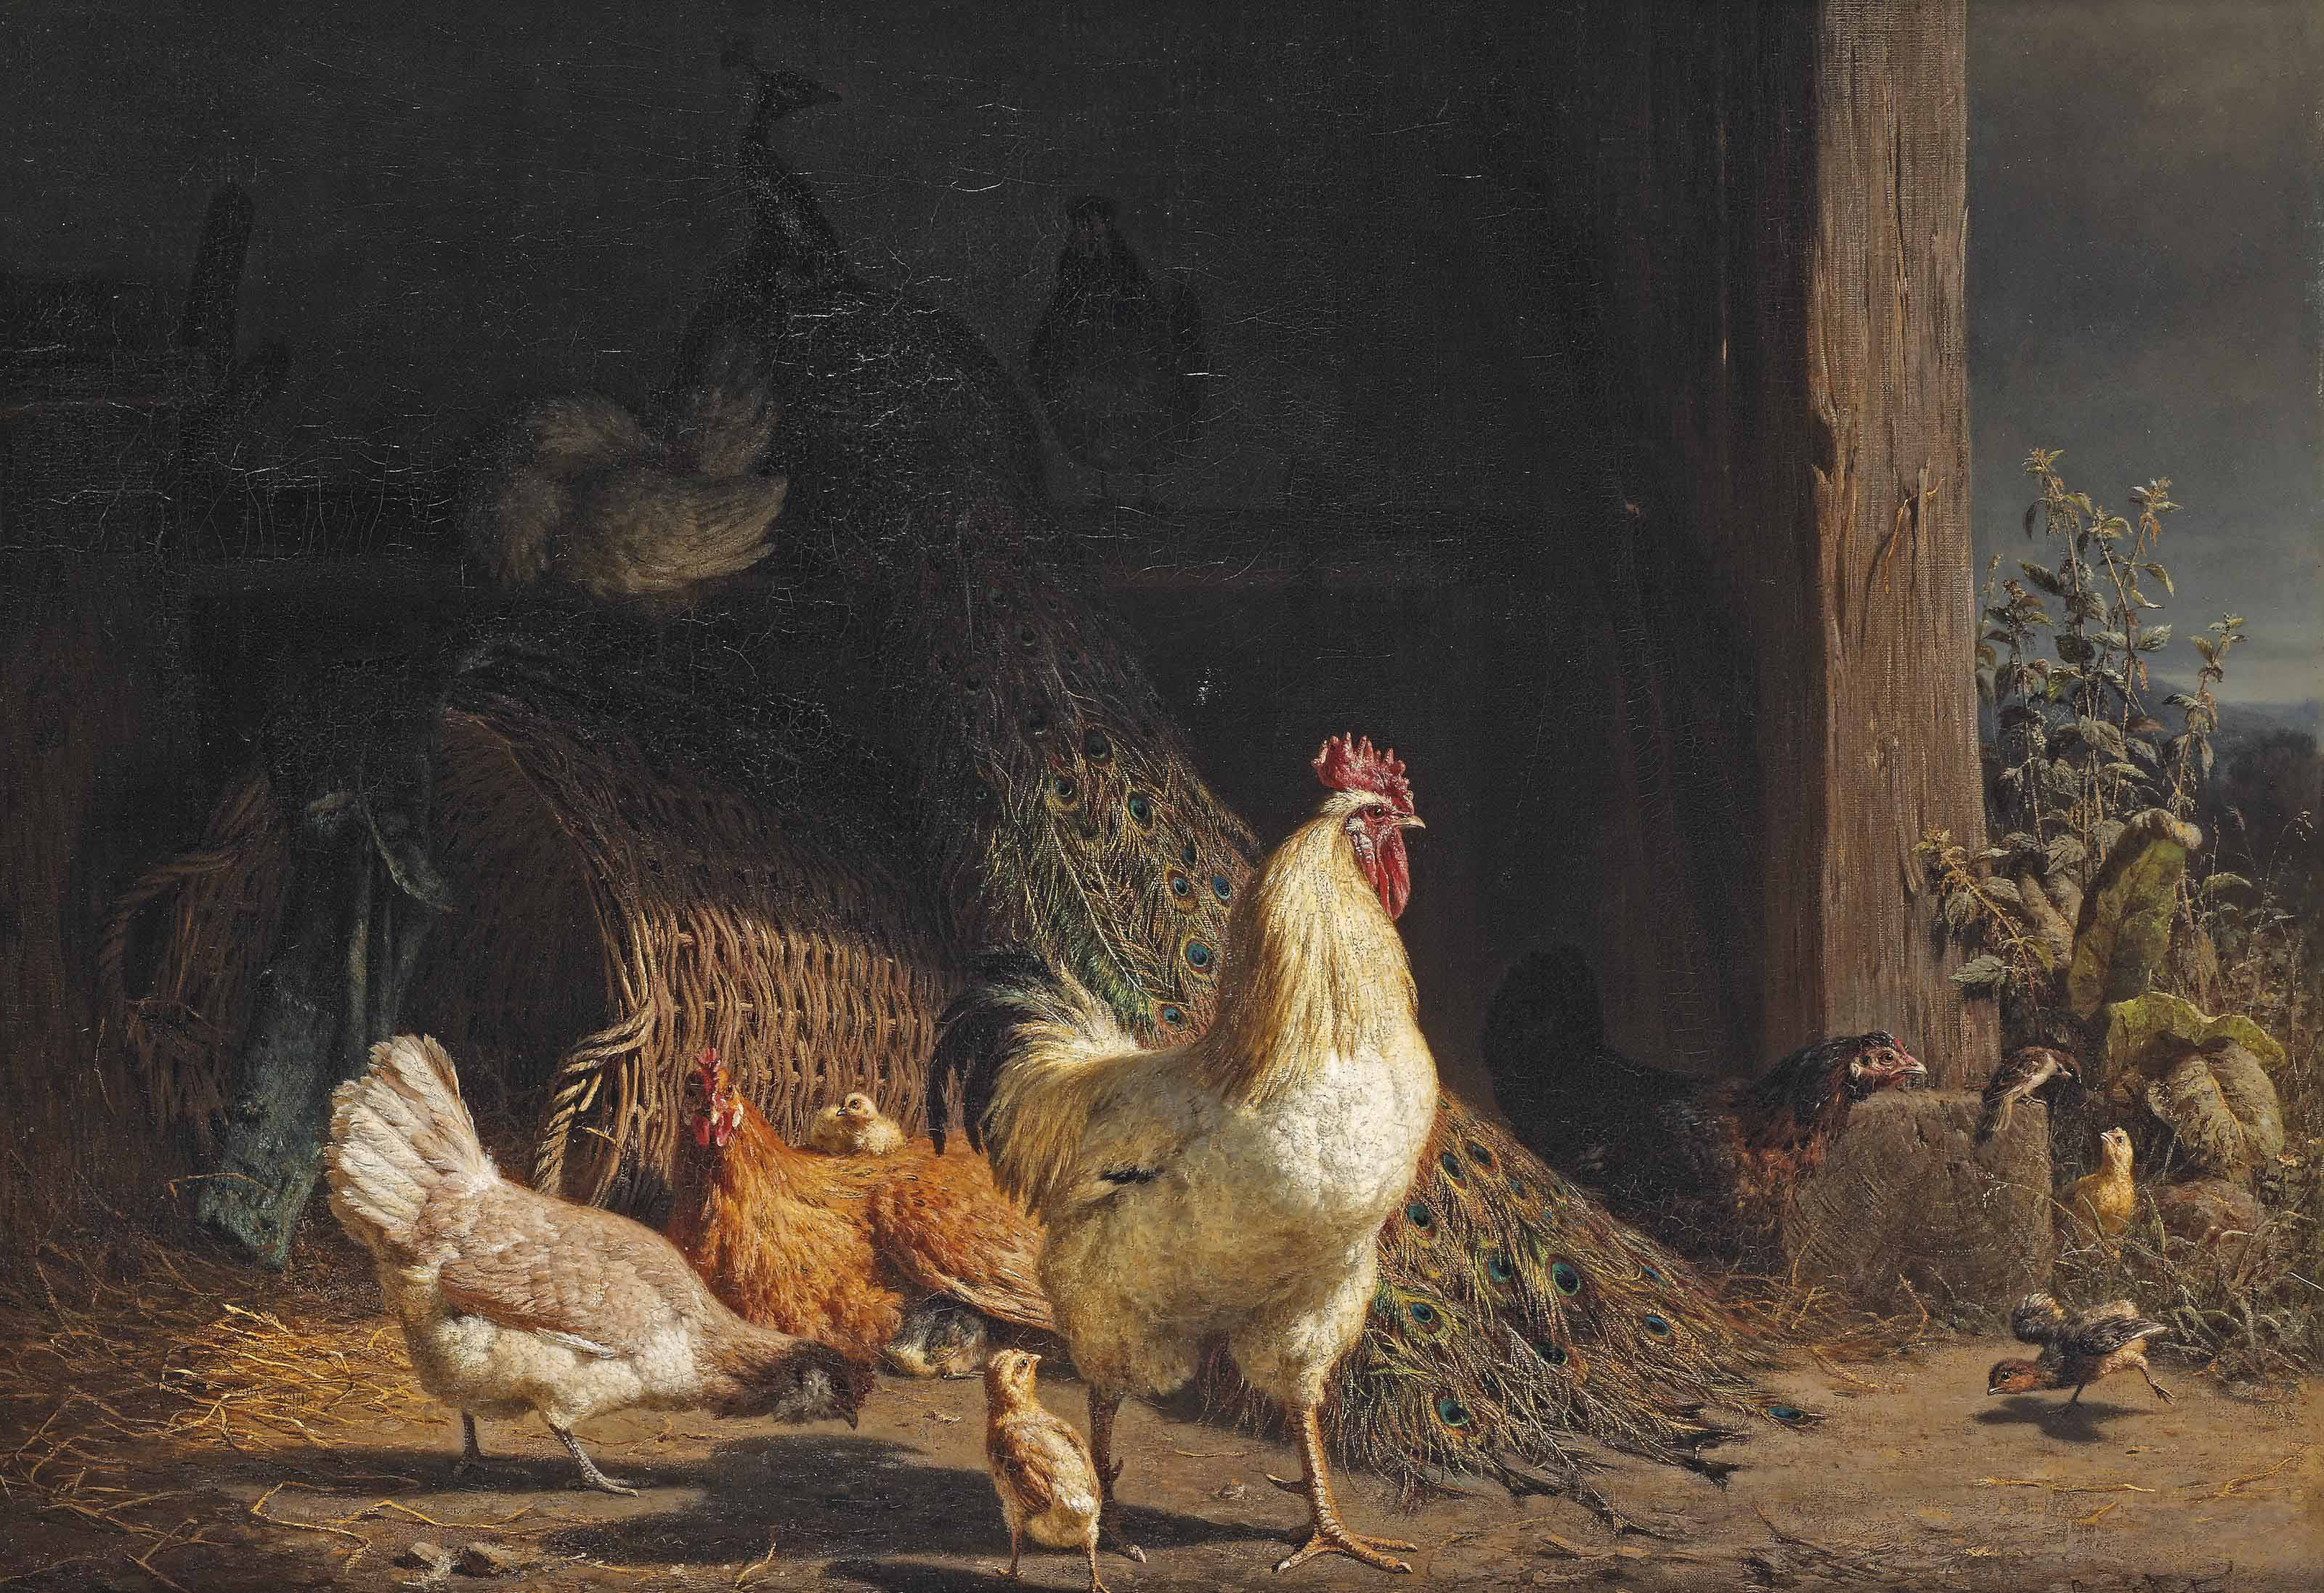 A peacock, a rooster and chicks in a stable